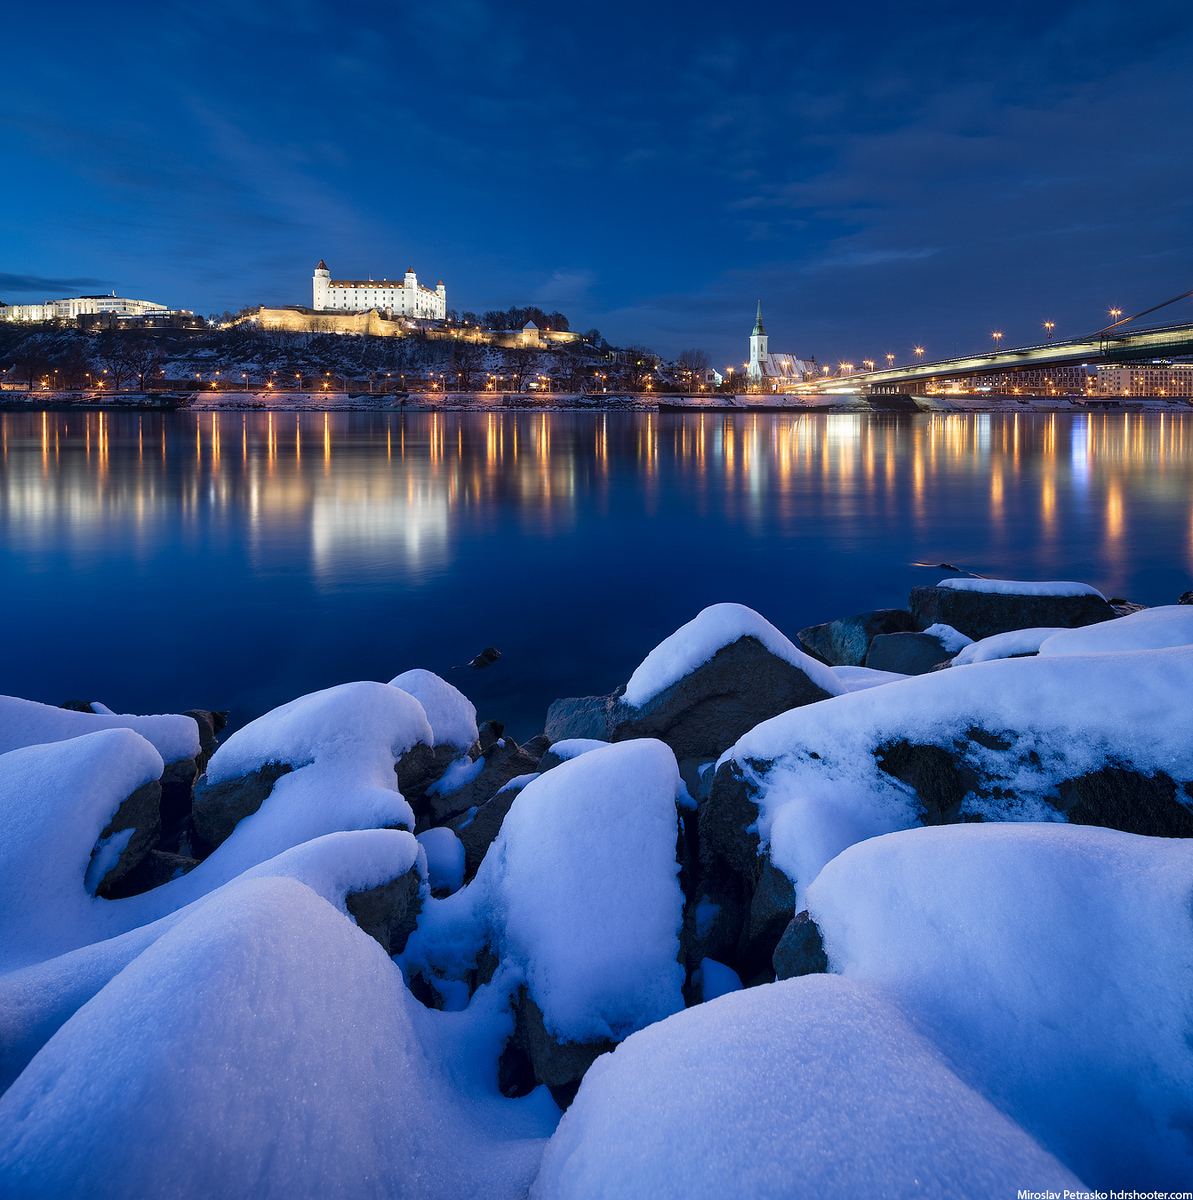 Snow covered rocks at the Danube